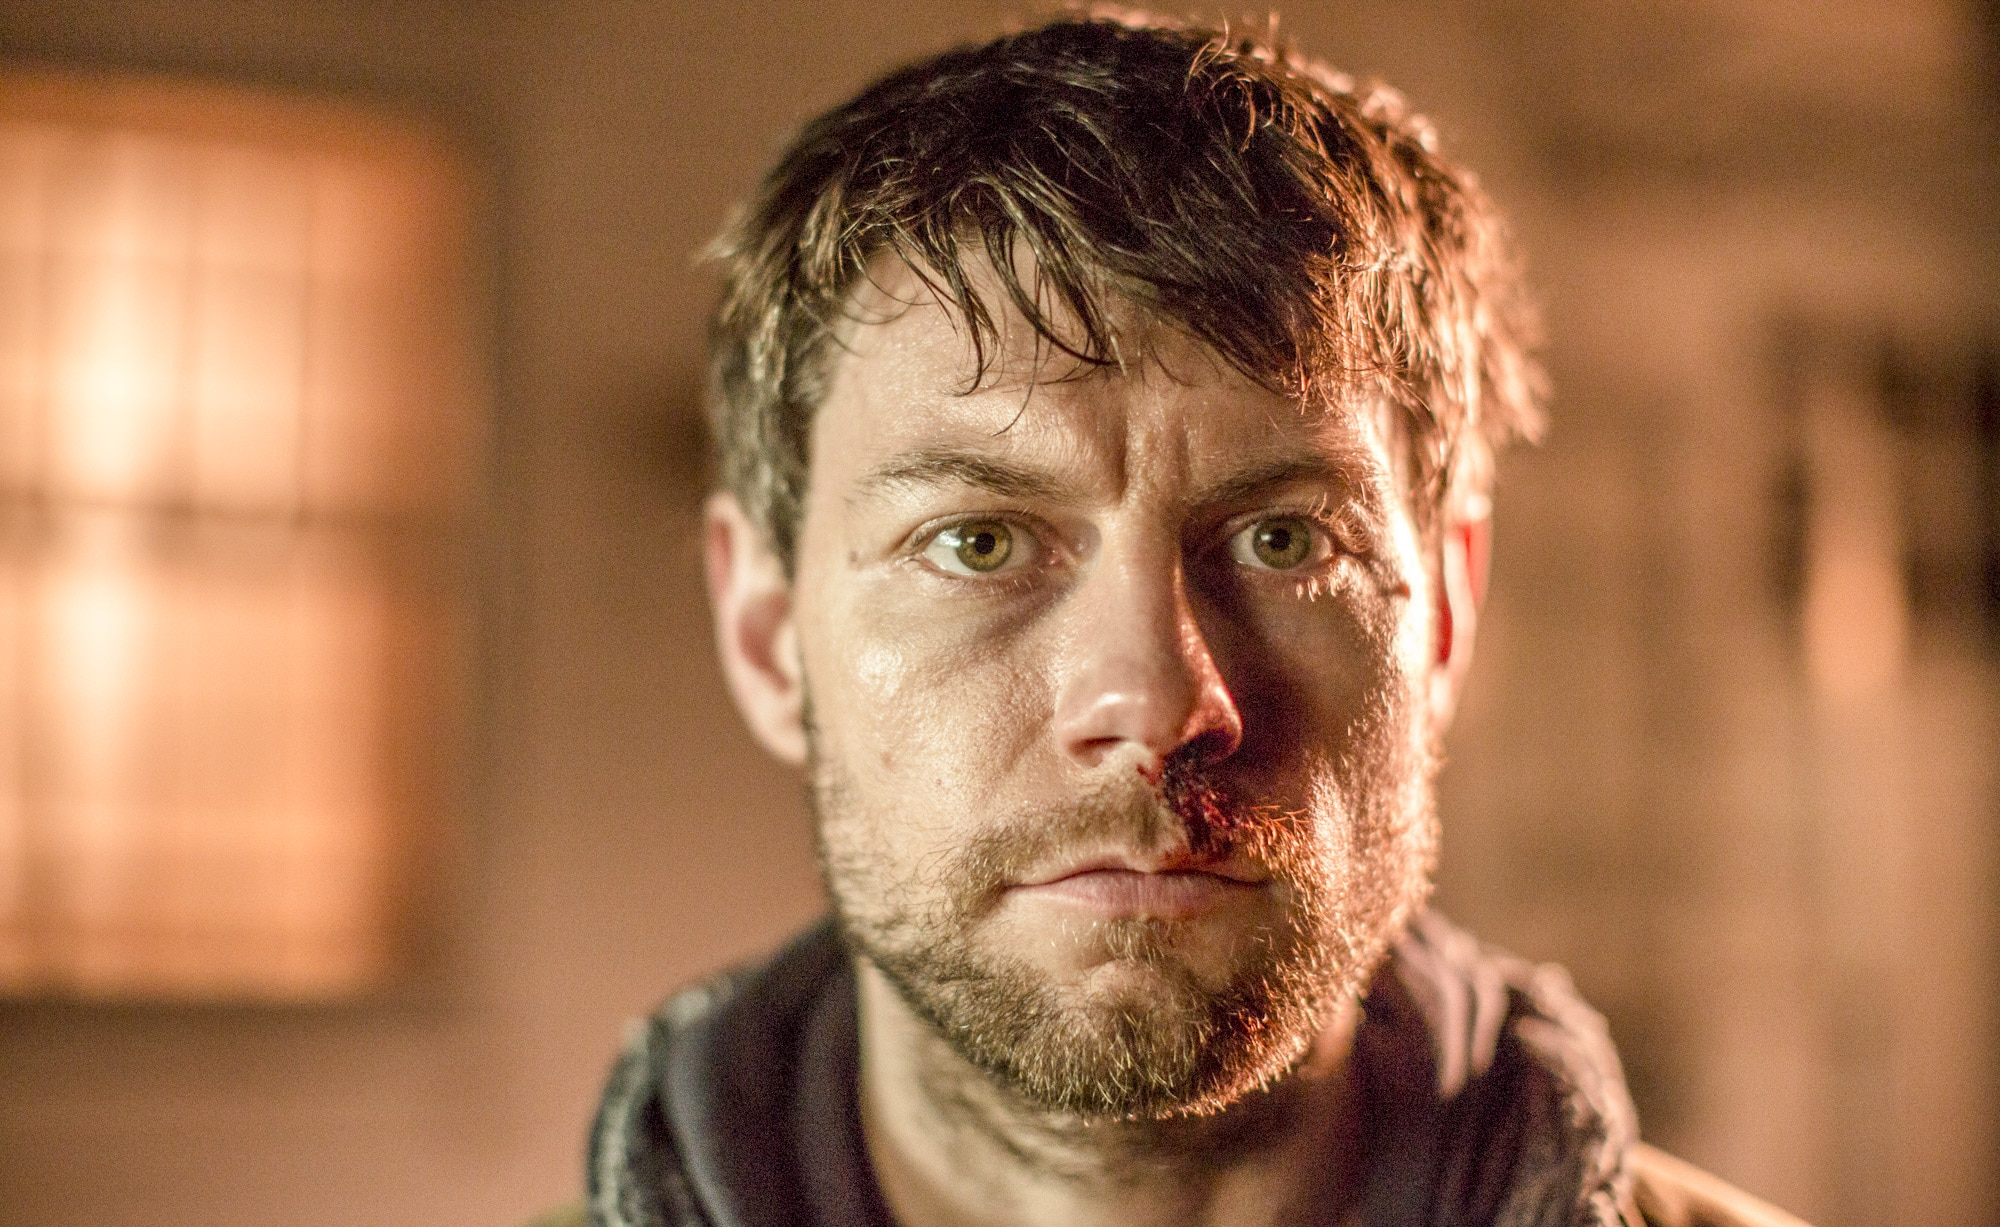 OUTCAST PatrickFugit - Enter Outcast's Short Story Contest and See Your Work Brought to Life as a Comic